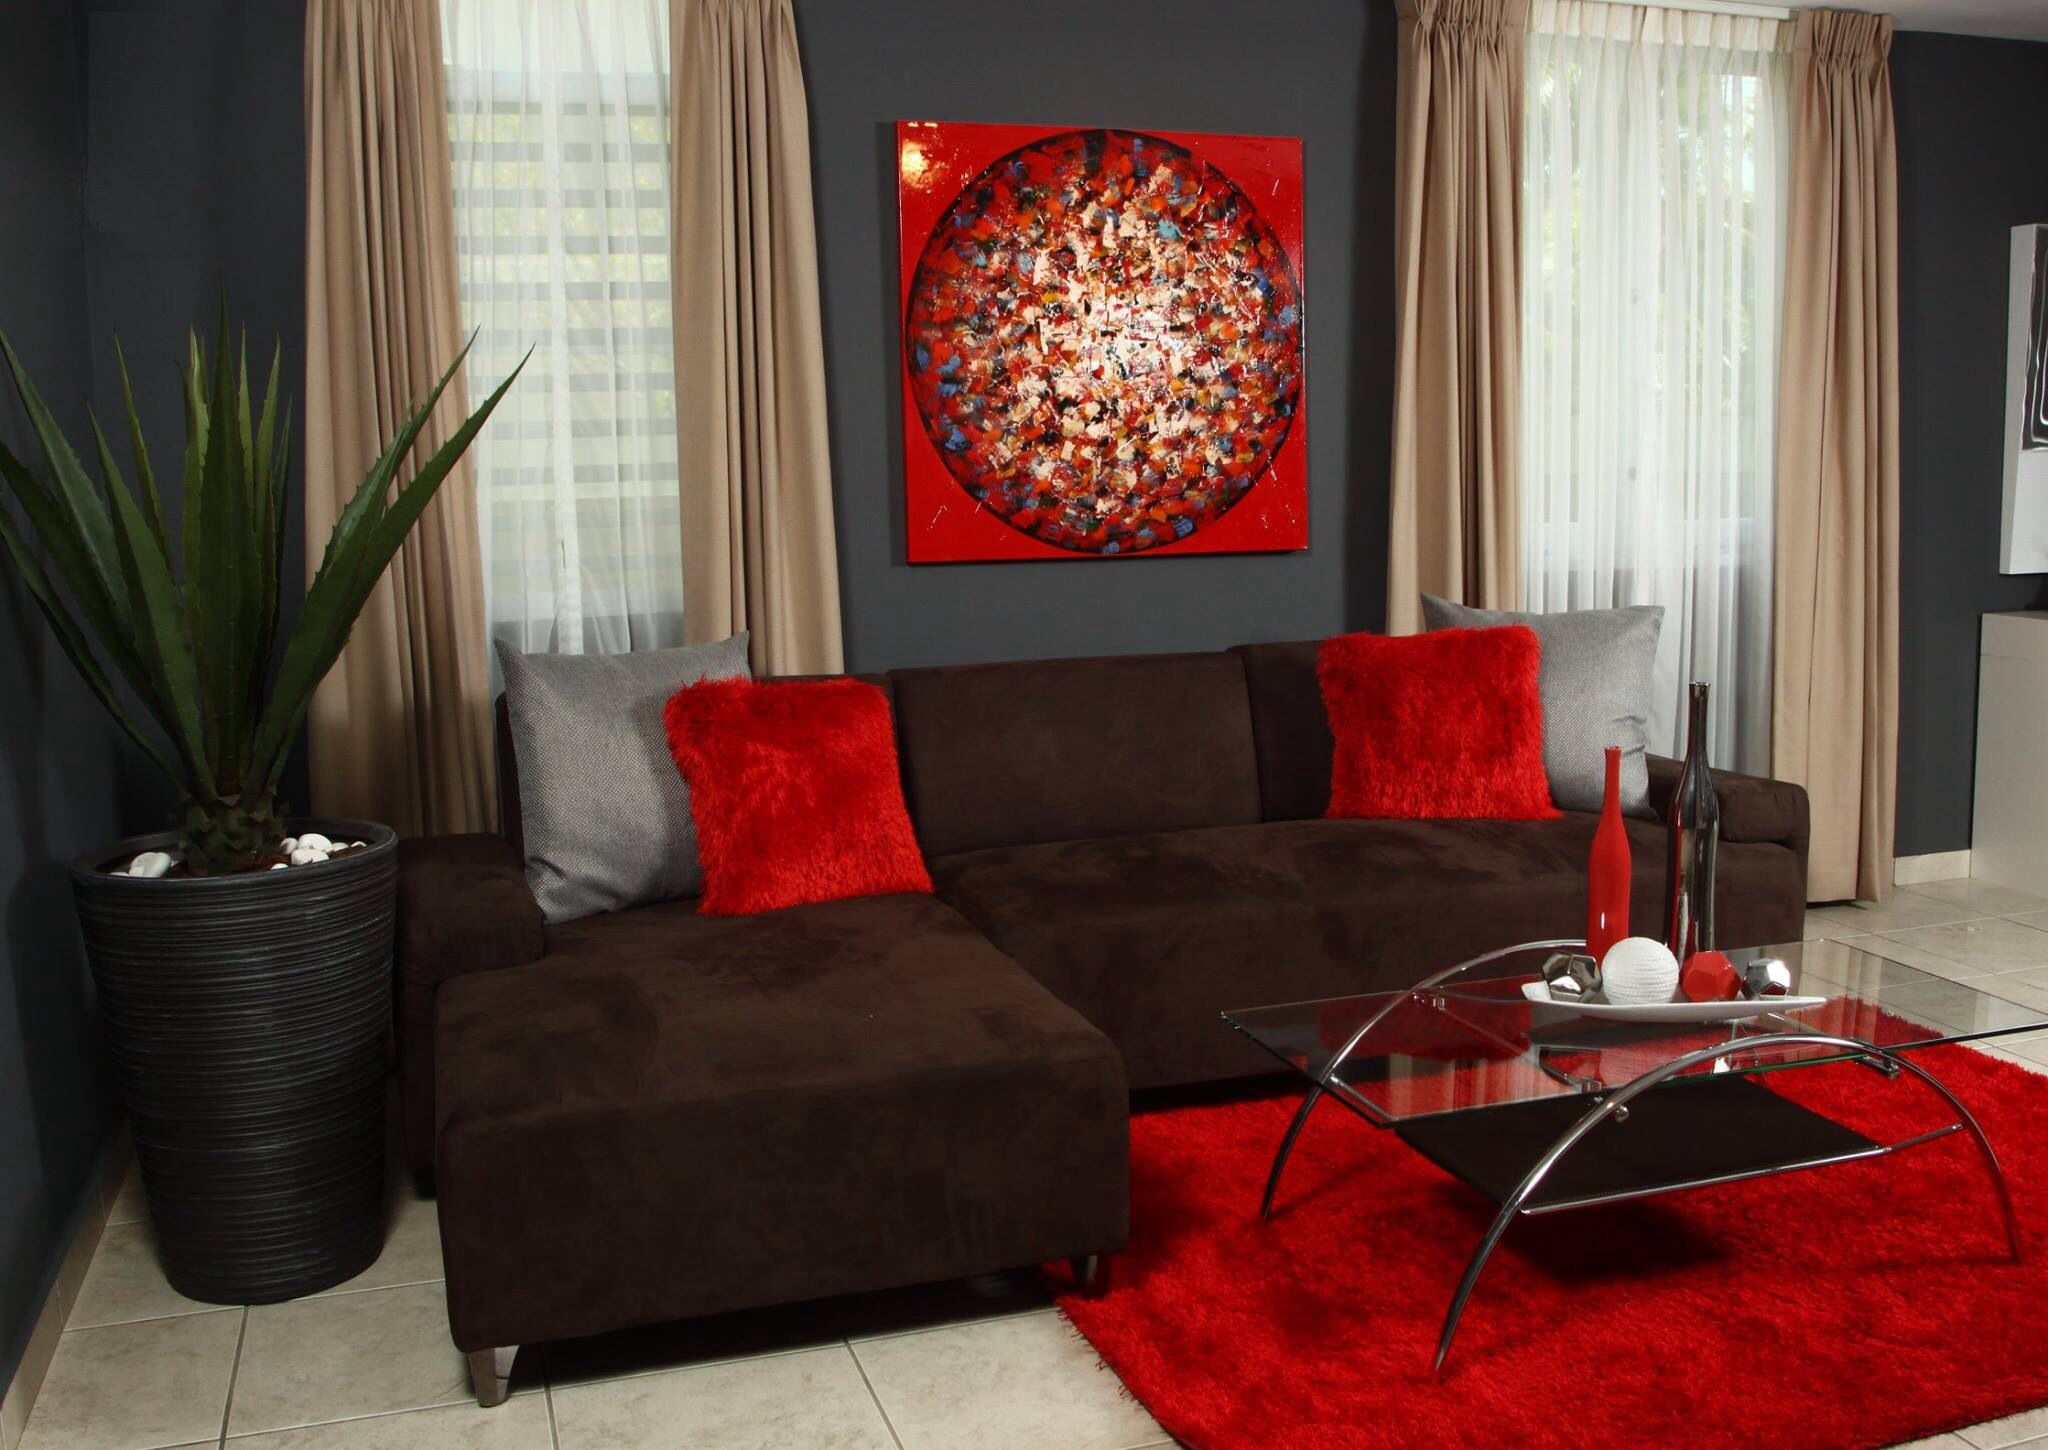 Red Decoration For Living Room Love It Home Decor Pinterest Red Livin